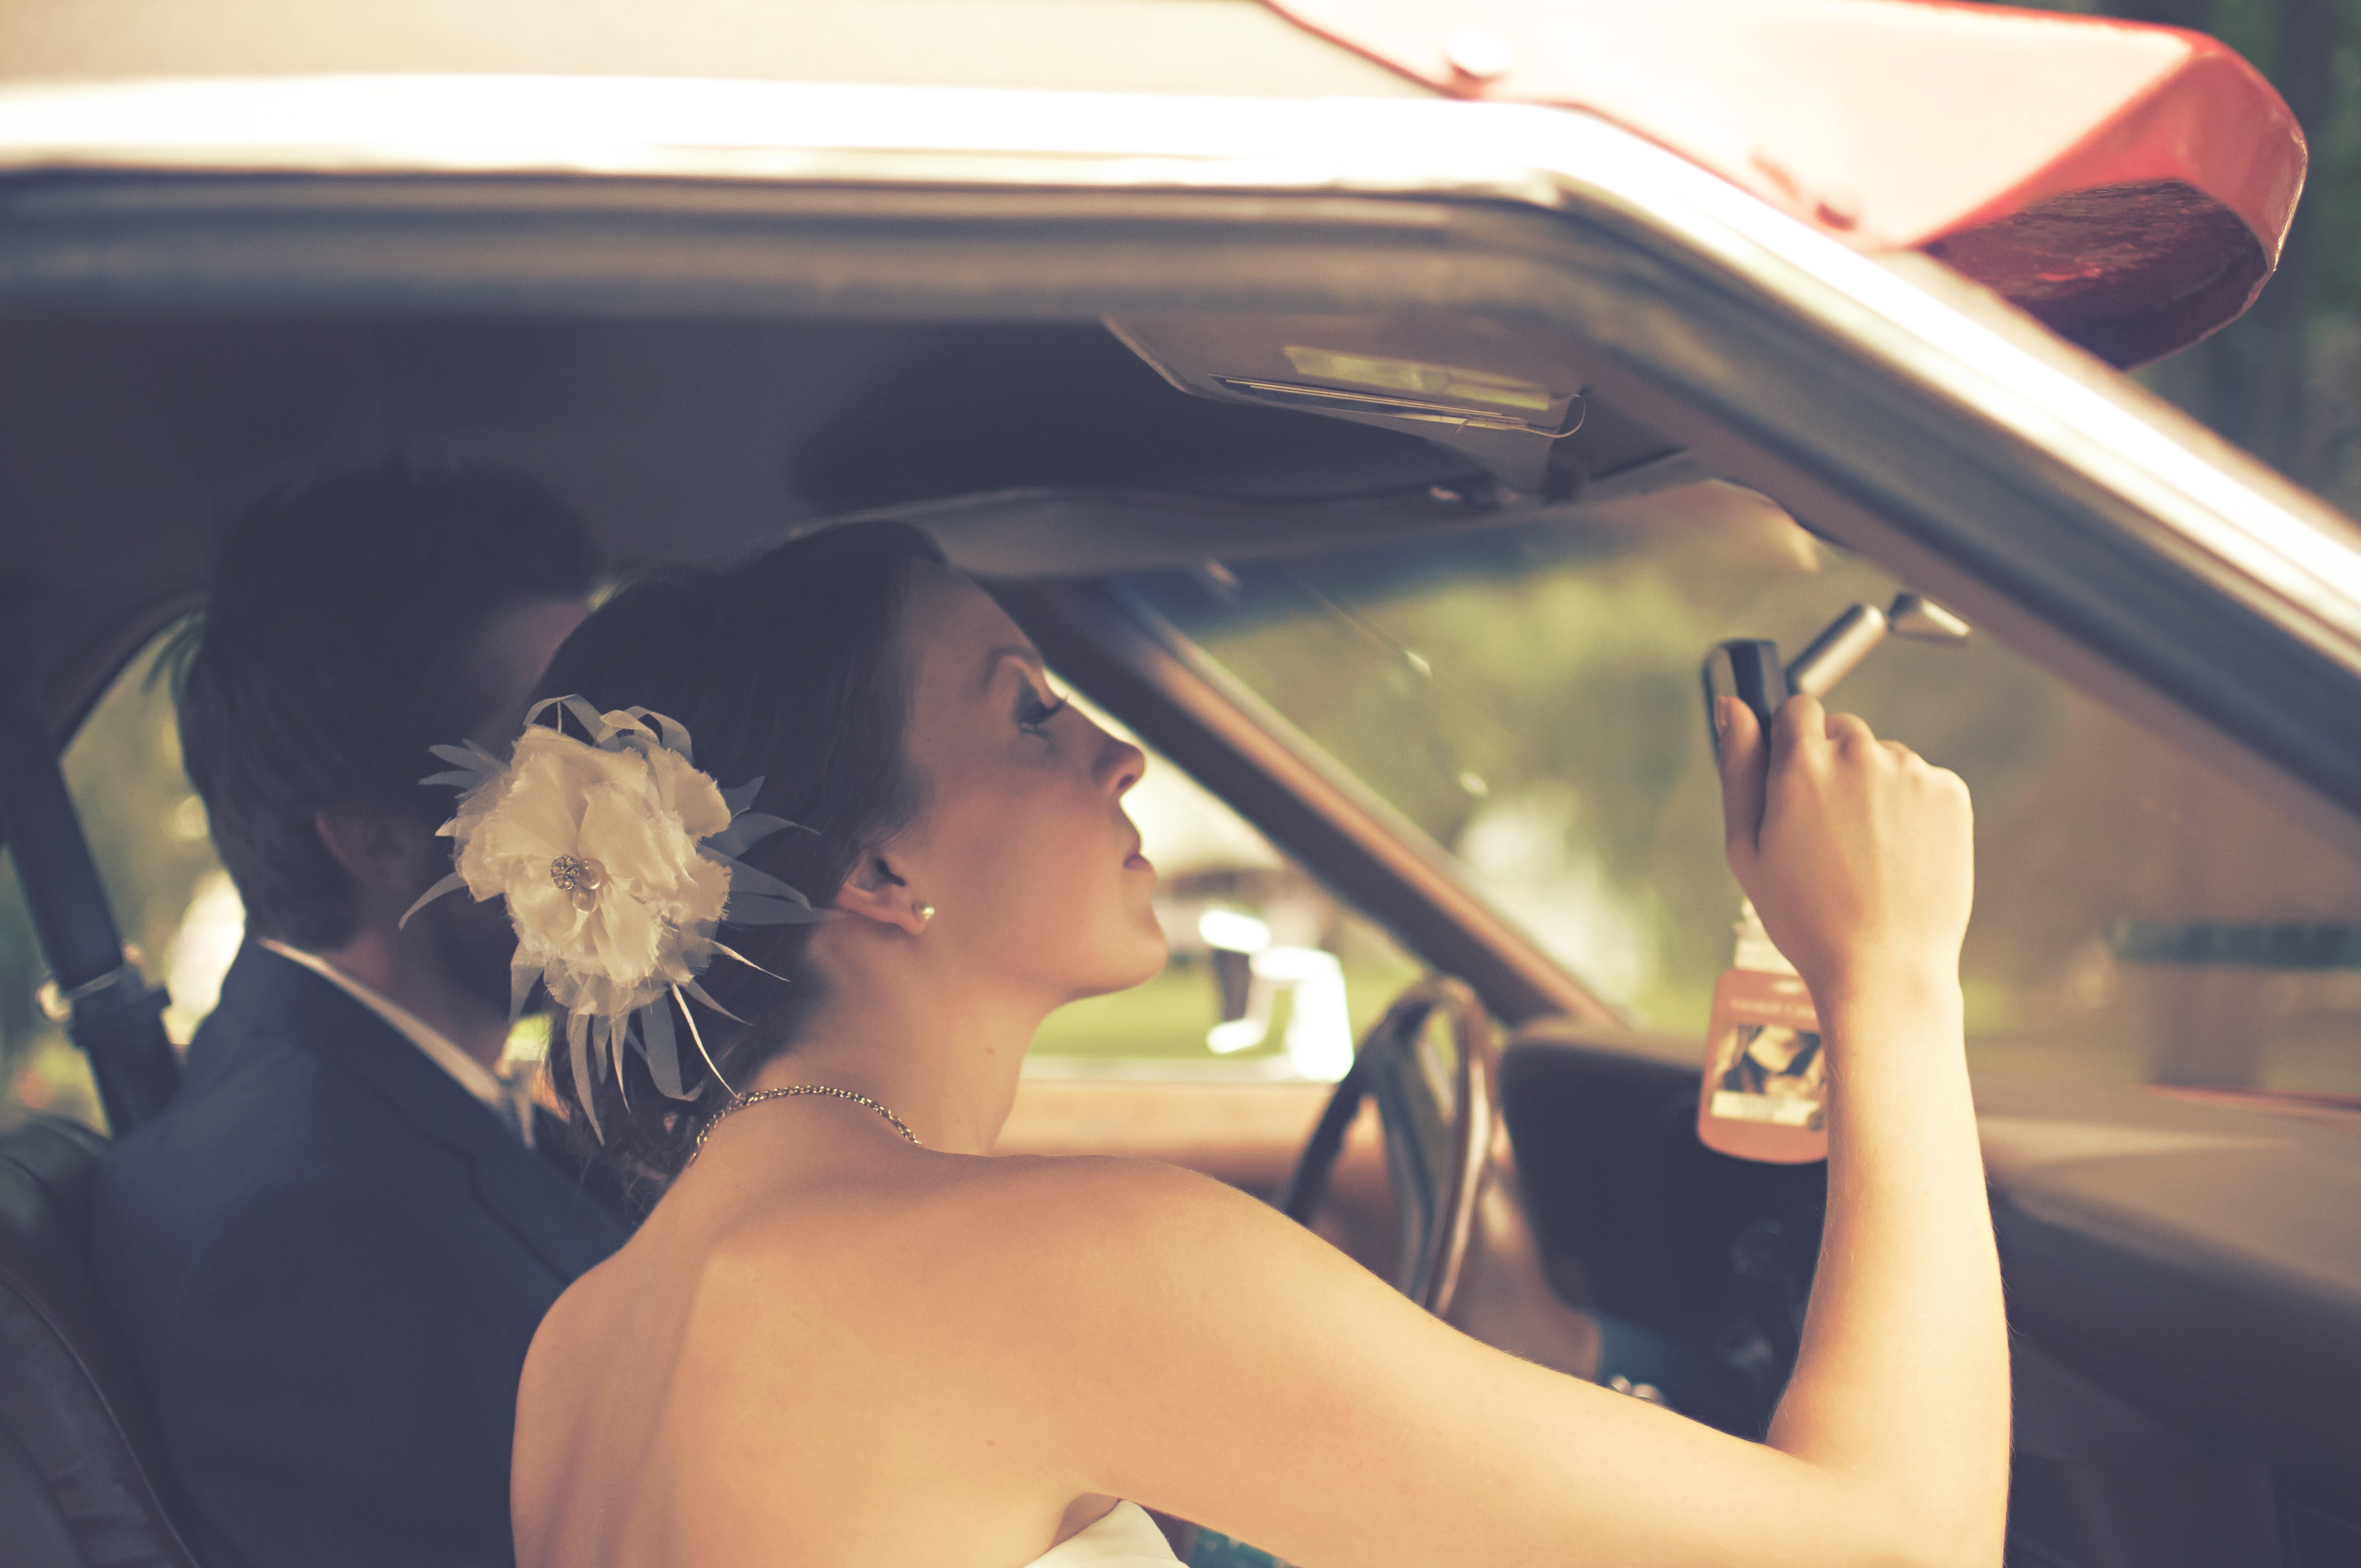 Free stock photo of couple, inside car, rearview mirror